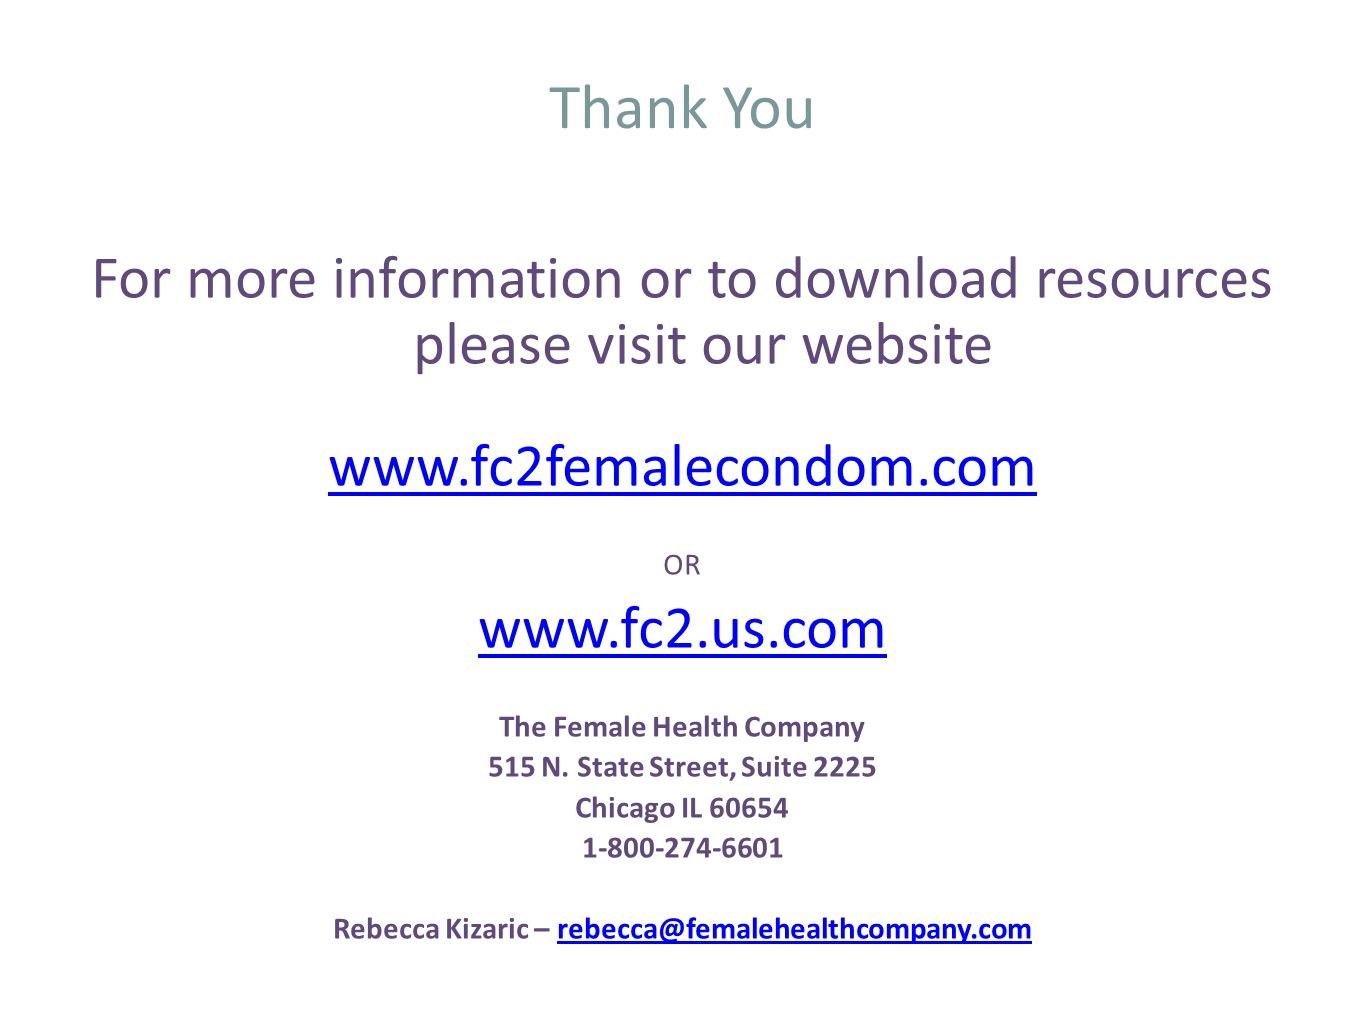 Thank You For more information or to download resources please visit our website. www.fc2femalecondom.com.